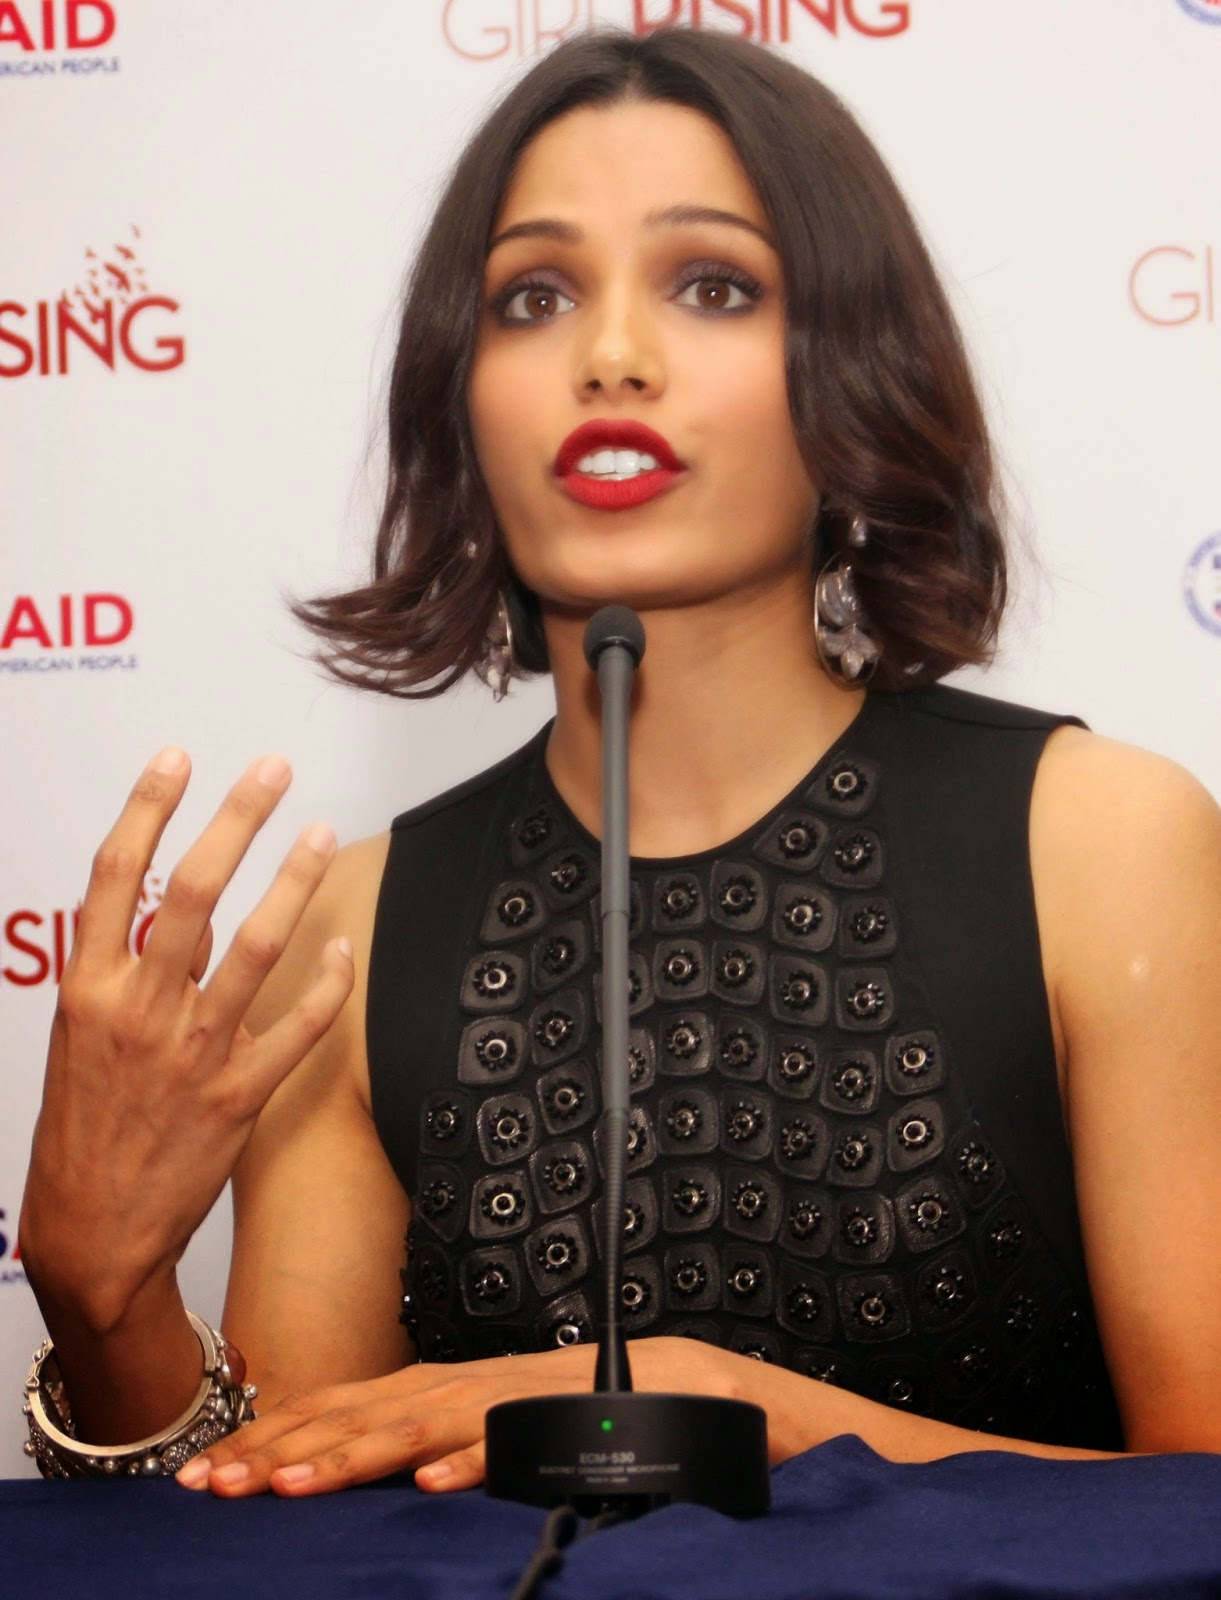 Cleavage Freida Pinto nudes (86 foto and video), Tits, Leaked, Twitter, braless 2018